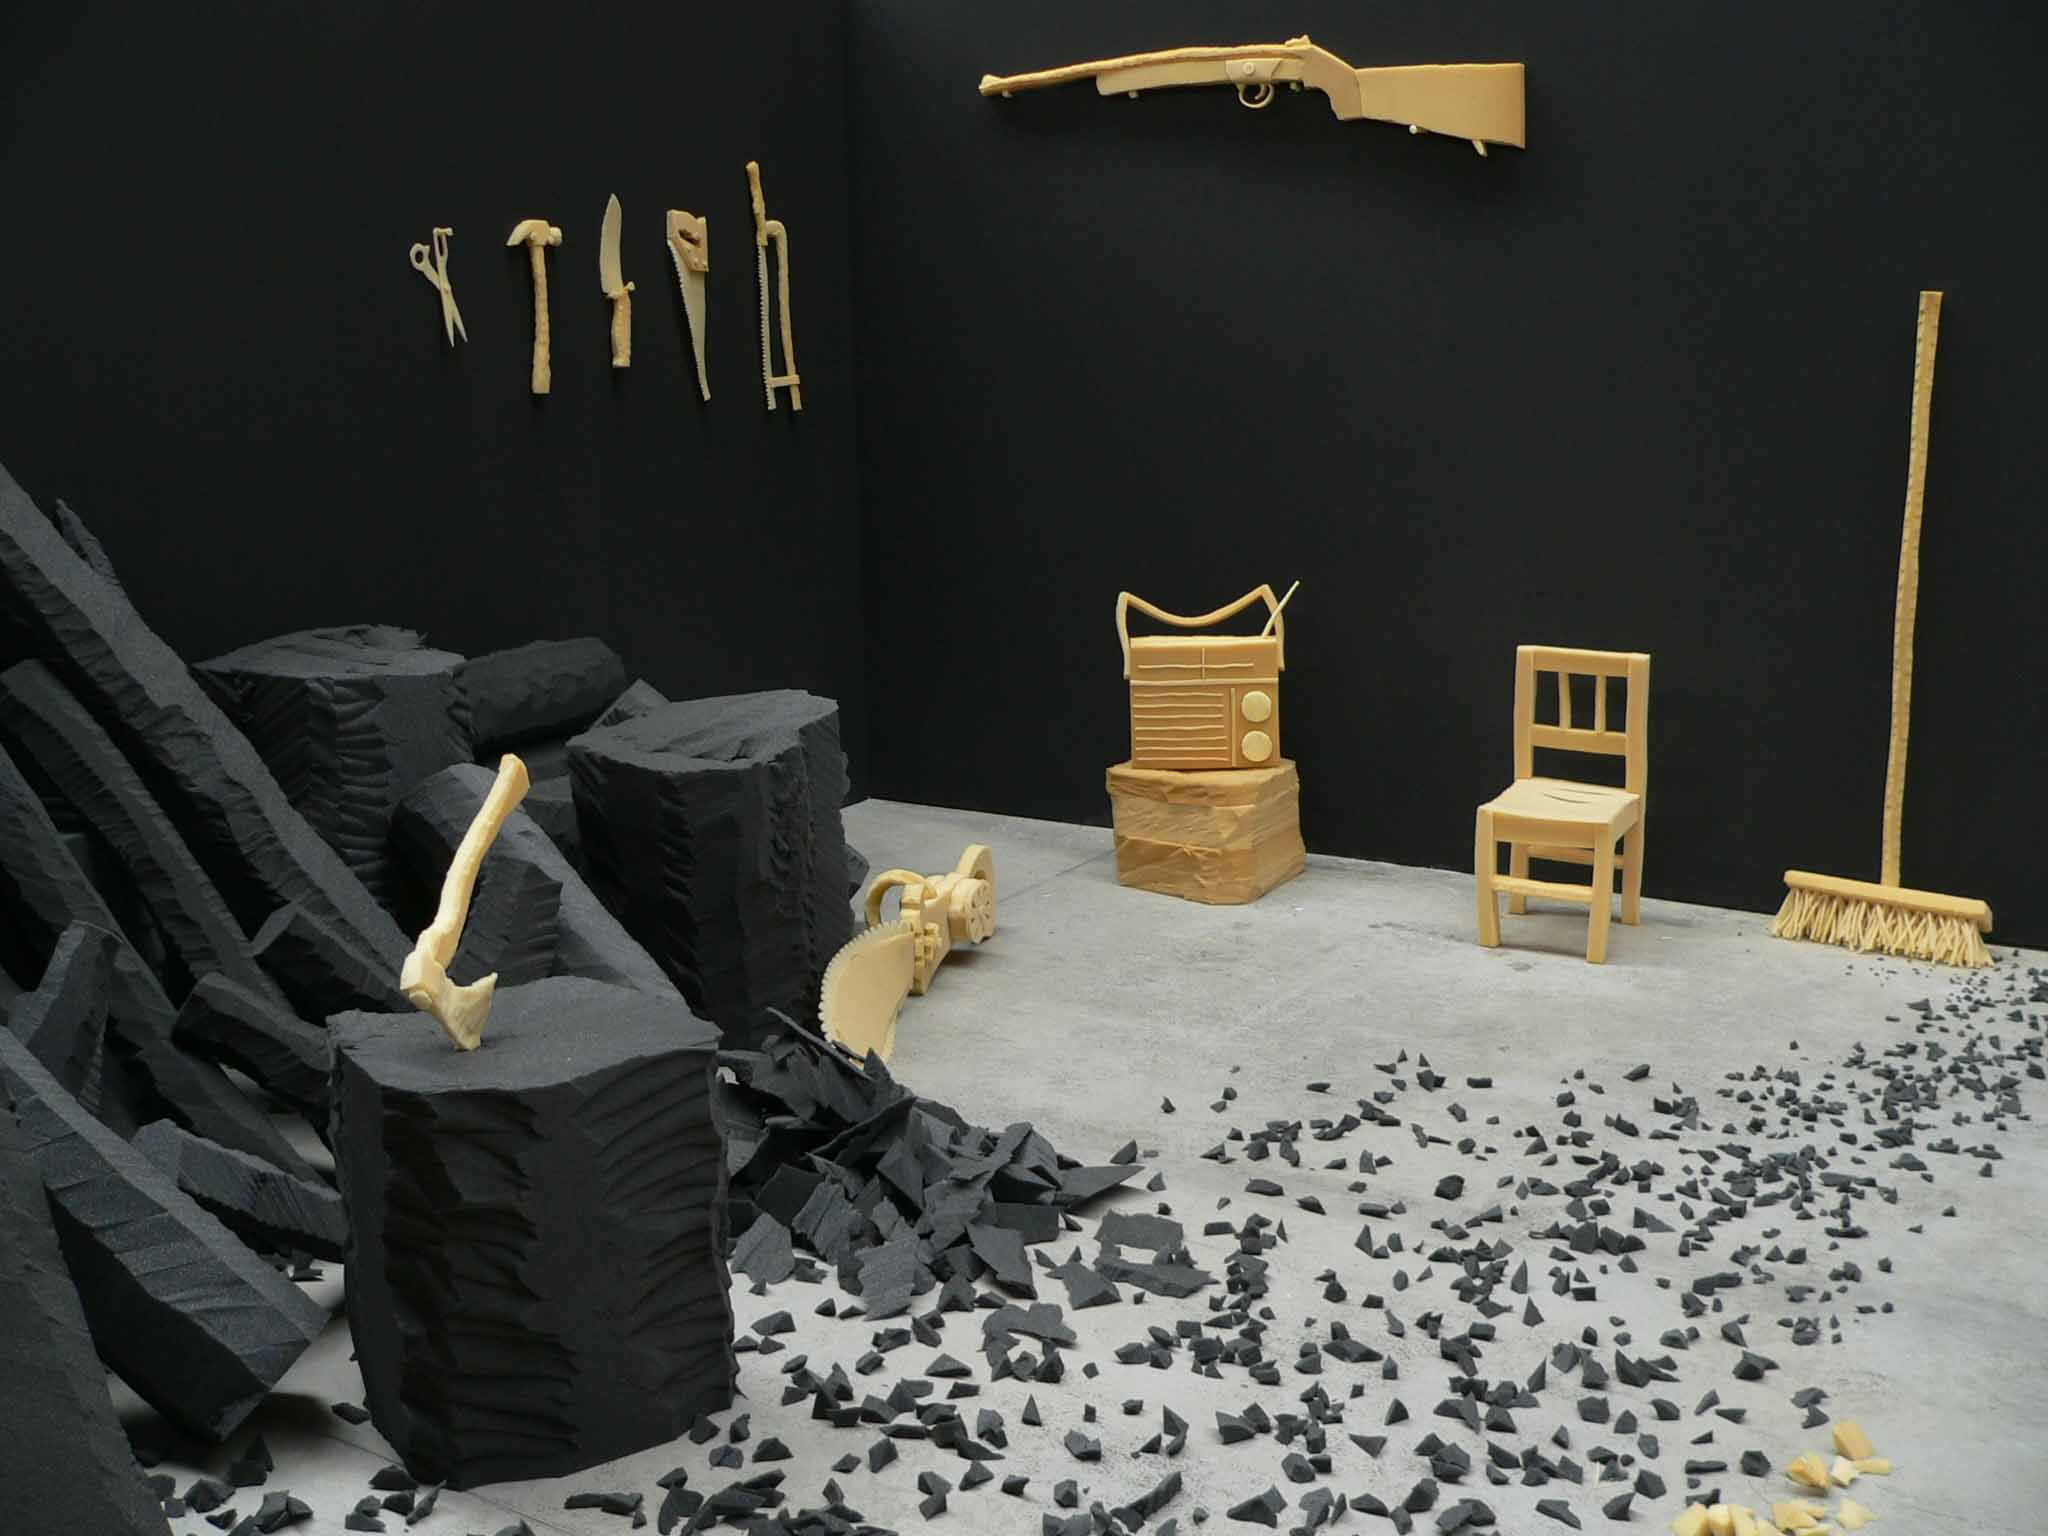 ArtCenterSF-Dina_Shenhav-The_End_of_the_Forest_installation_view_01